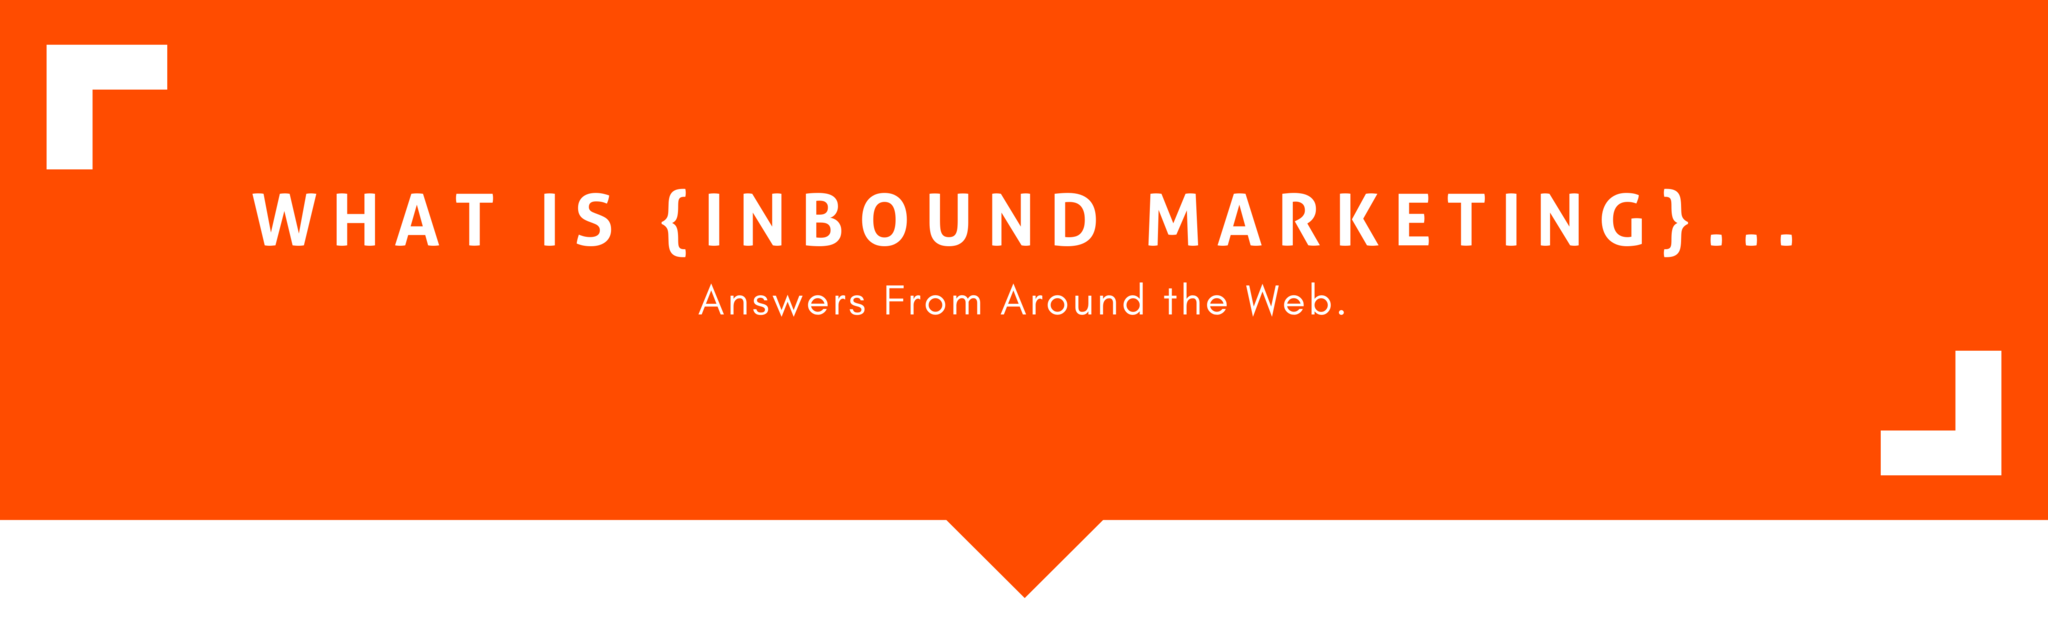 What is Inbound Marketing...Answers from around the web